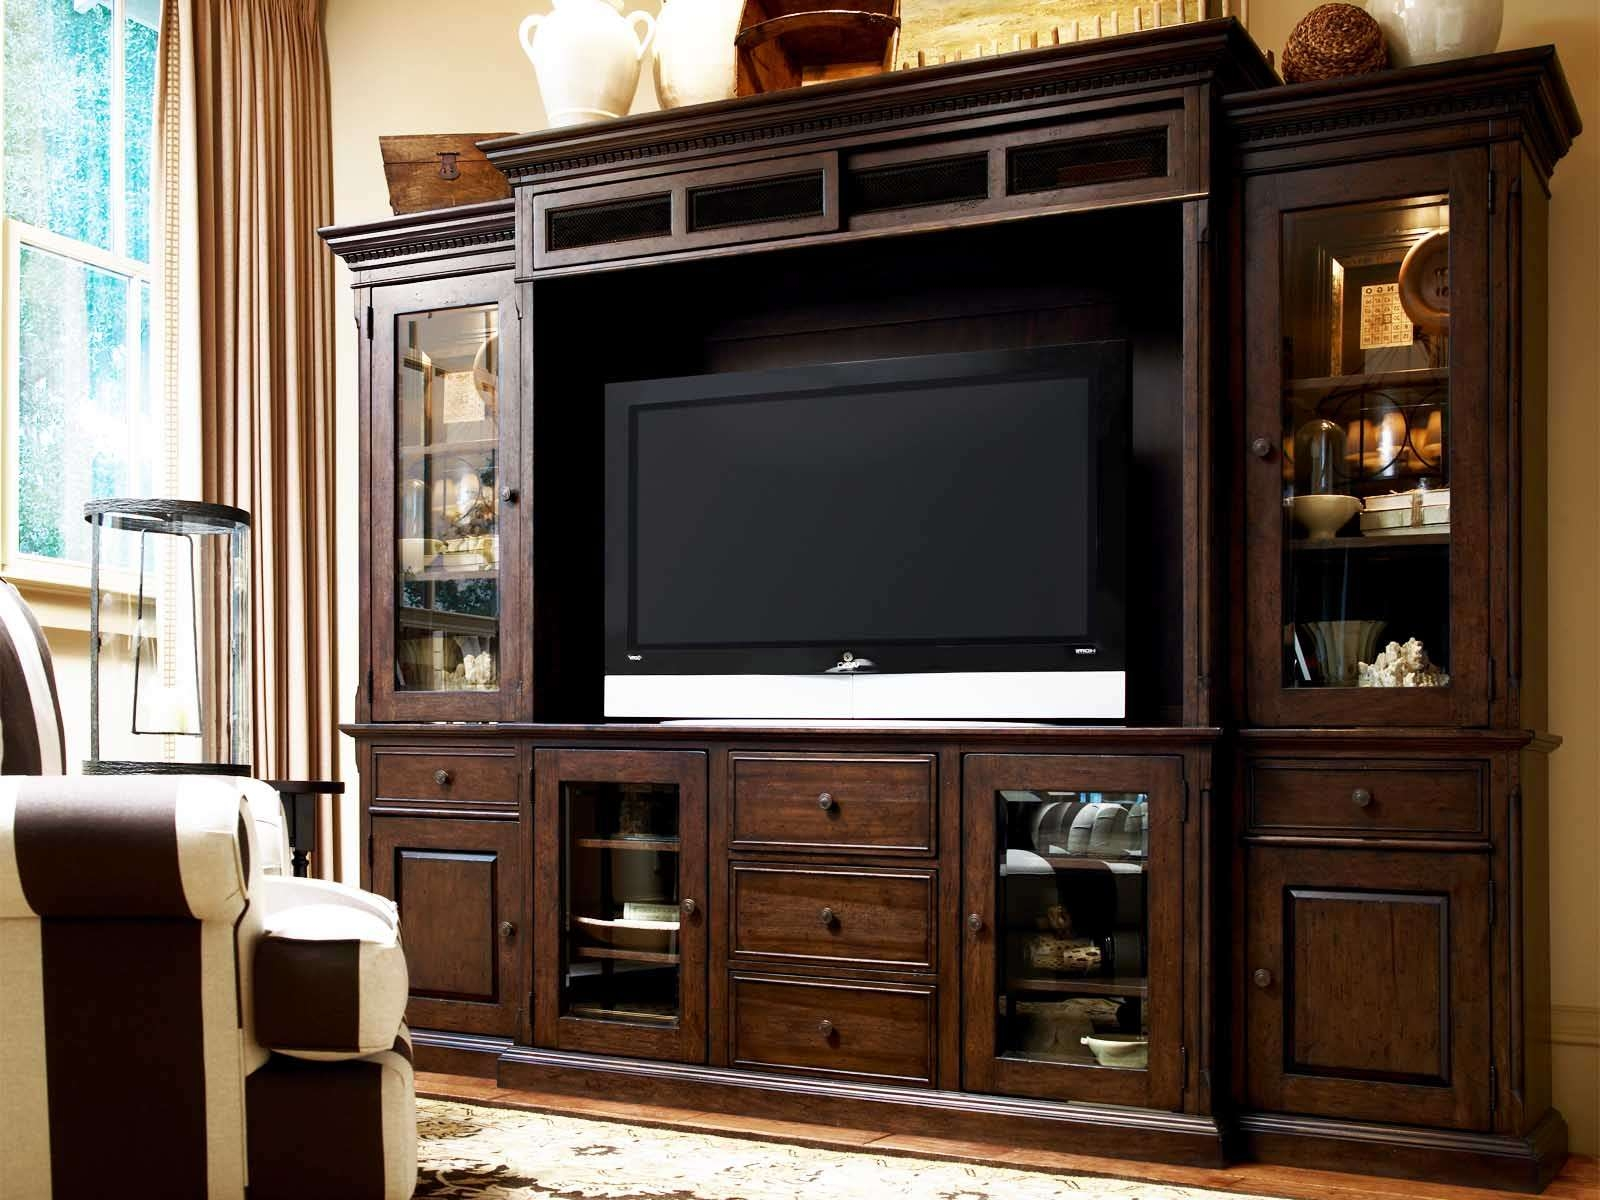 Large Brown Lacquered Mahogany Wood Media Cabinet With Lighted Throughout Wooden Tv Cabinets With Glass Doors (View 7 of 20)